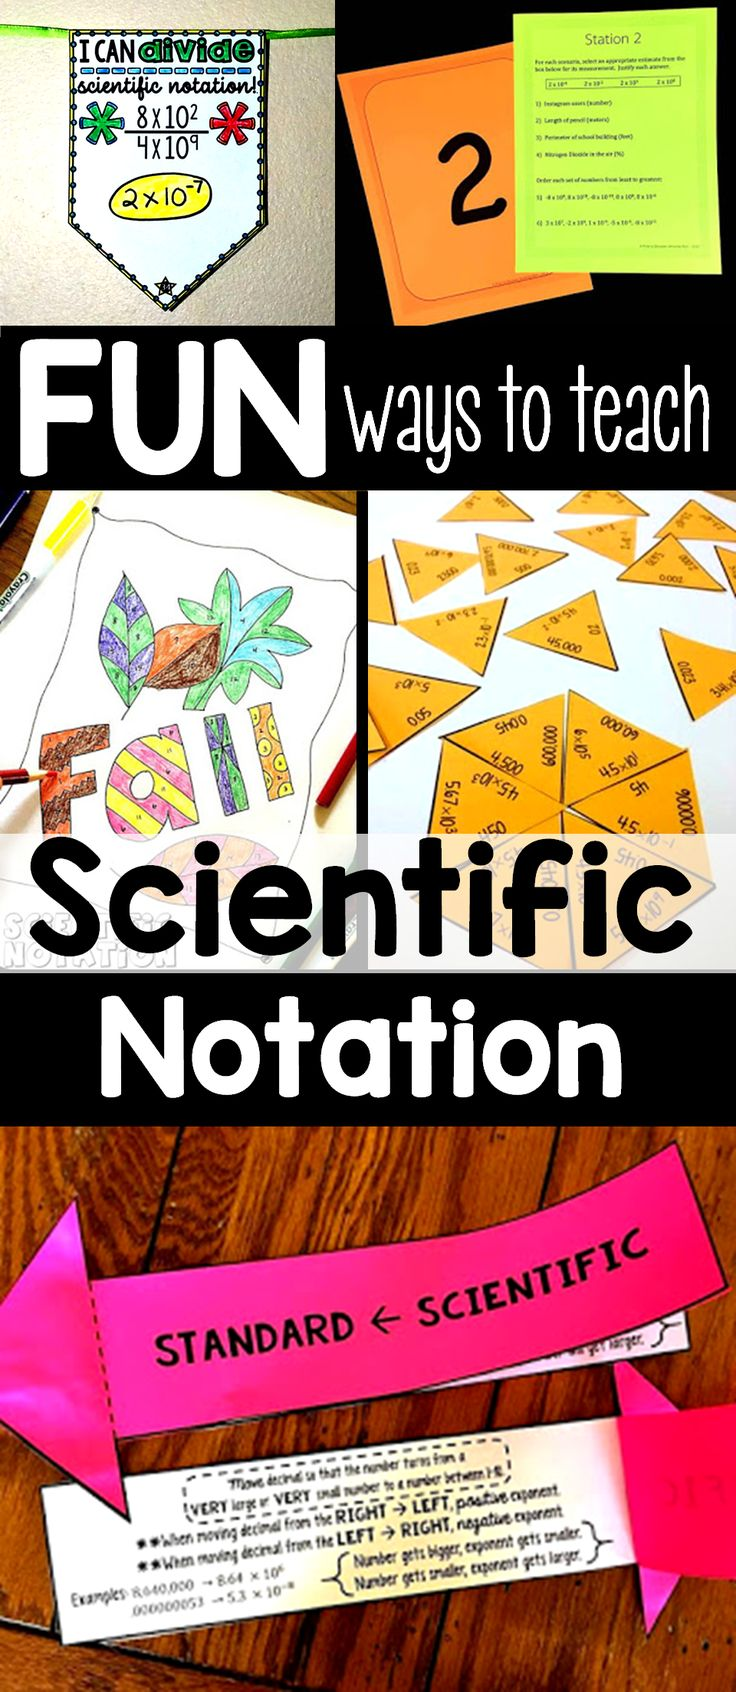 Scientific Notation is one of those things I don't at all remember learning. I mean, it must have happened somewhere along the line, but where that was is a complete mystery. Maybe it was during those foggy junior high years when I was much more concerned about the height of my hair and keeping my skirts from clinking to my pantyhoes. Anyway, when a teacher asked me last year to make her some some Scientific Notation pennants, I decided after a bit I'd be up for a challenge. It's fun…